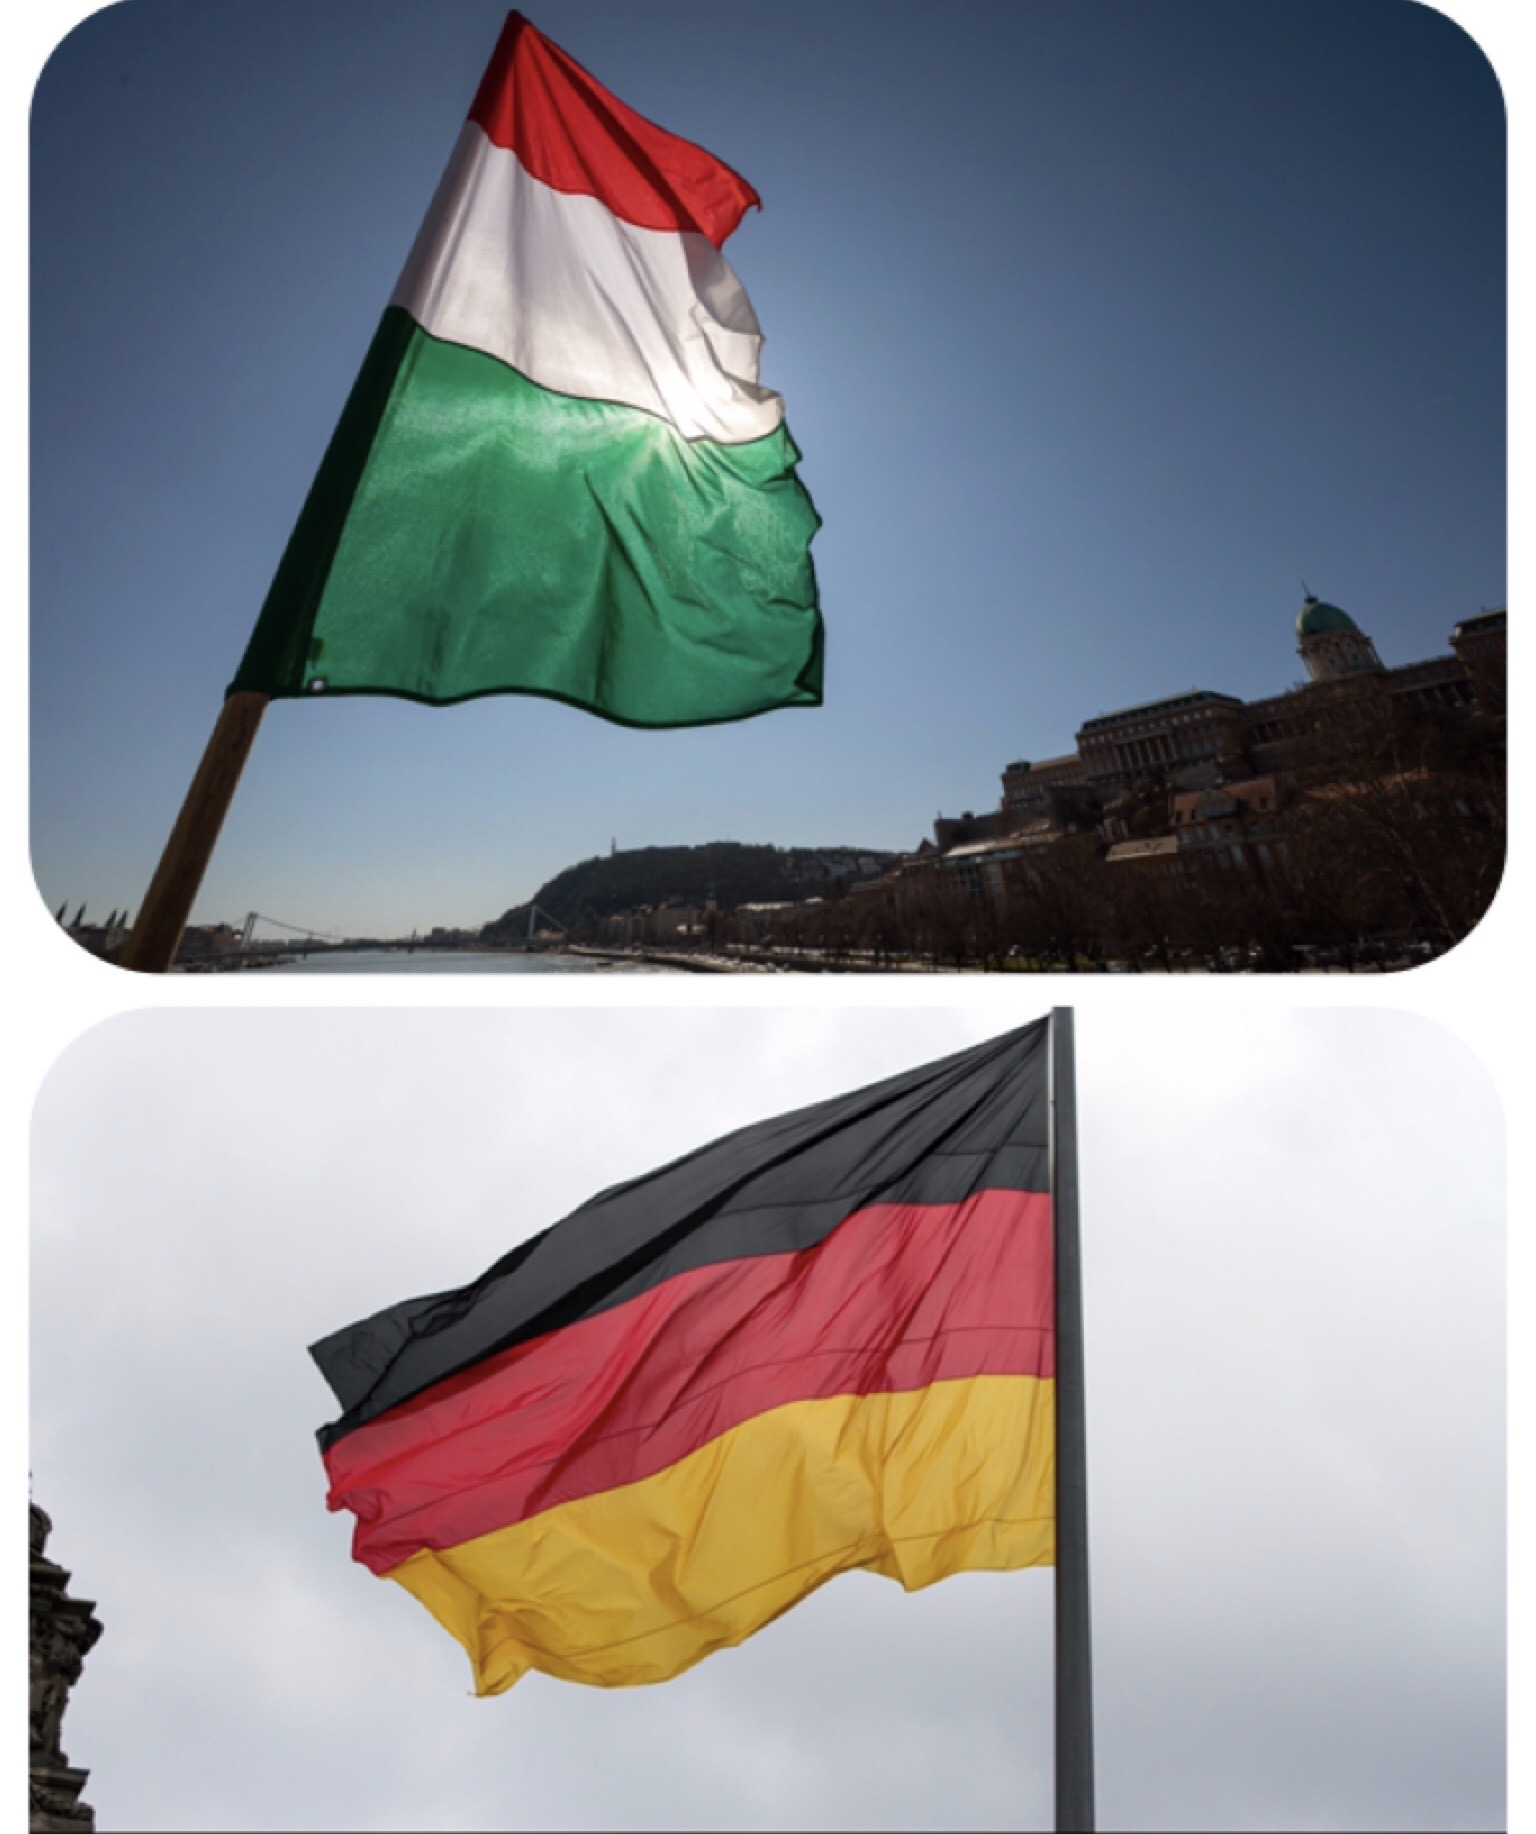 STRONG TRUST BETWEEN GERMANS AND HUNGARIANS